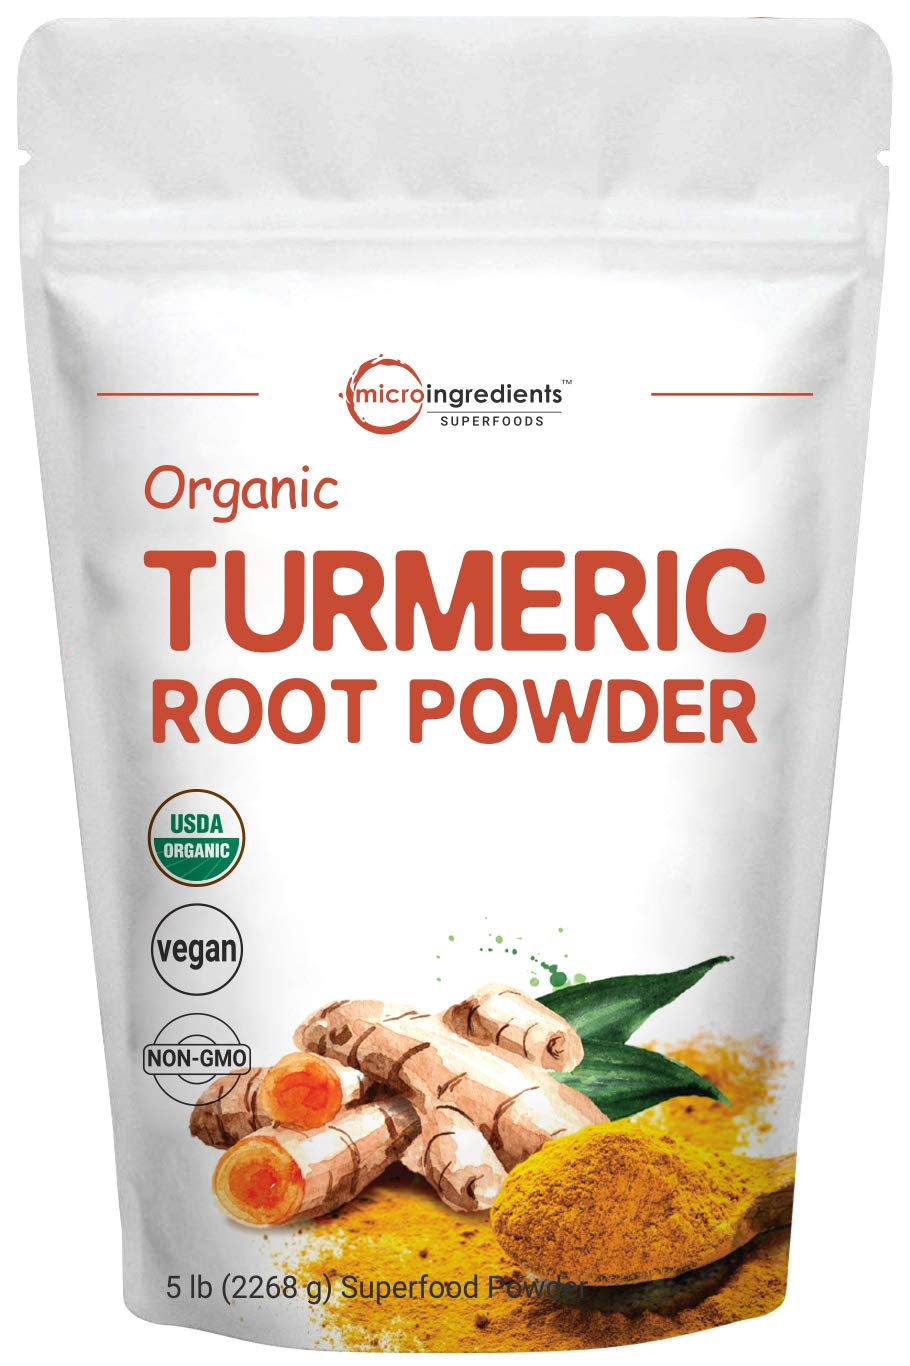 Organic Turmeric Root Powder, 5 Pounds (80 Ounce), Pure Turmeric Supplement, Contains Active Curcumin and Immune Vitamin C for Joint Pain Relief, Bone Health and Boosts Immune System, Vegan Friendly